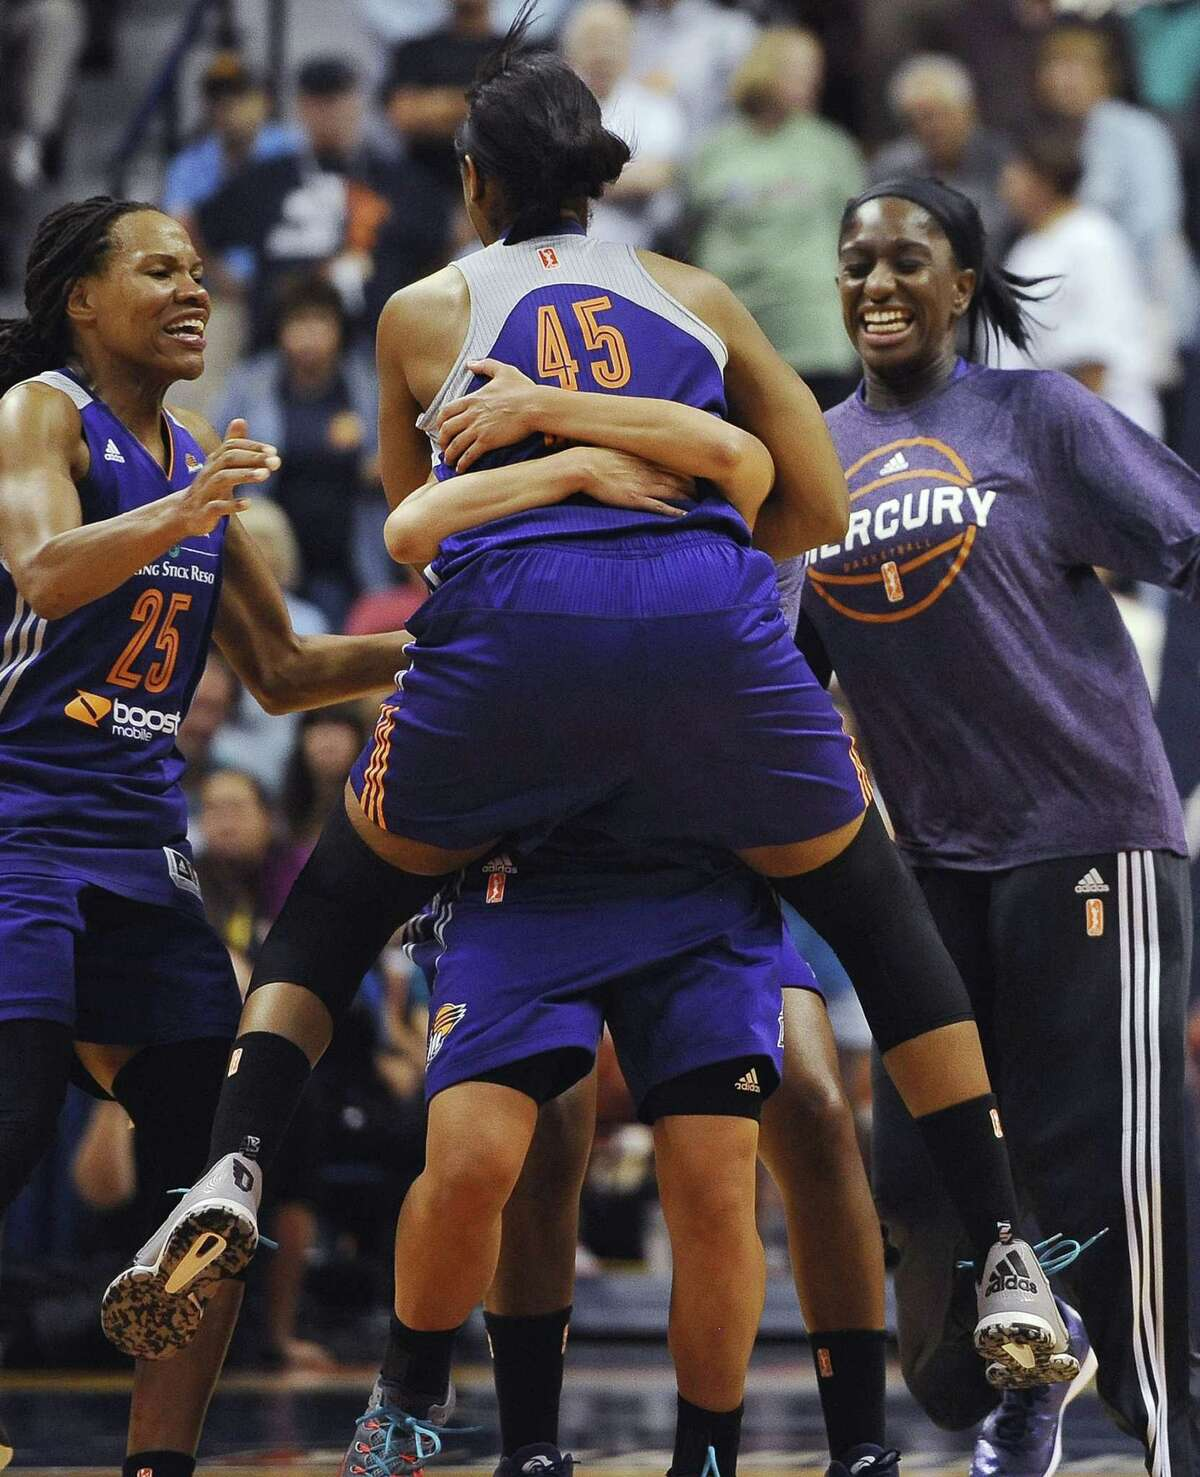 The Phoenix Mercury's Noelle Quinn (45) jumps into the arms of Leilani Mitchell after Mitchell hit the game-winning 3-pointer at the buzzer against the Connecticut Sun on Thursday in Uncasville.